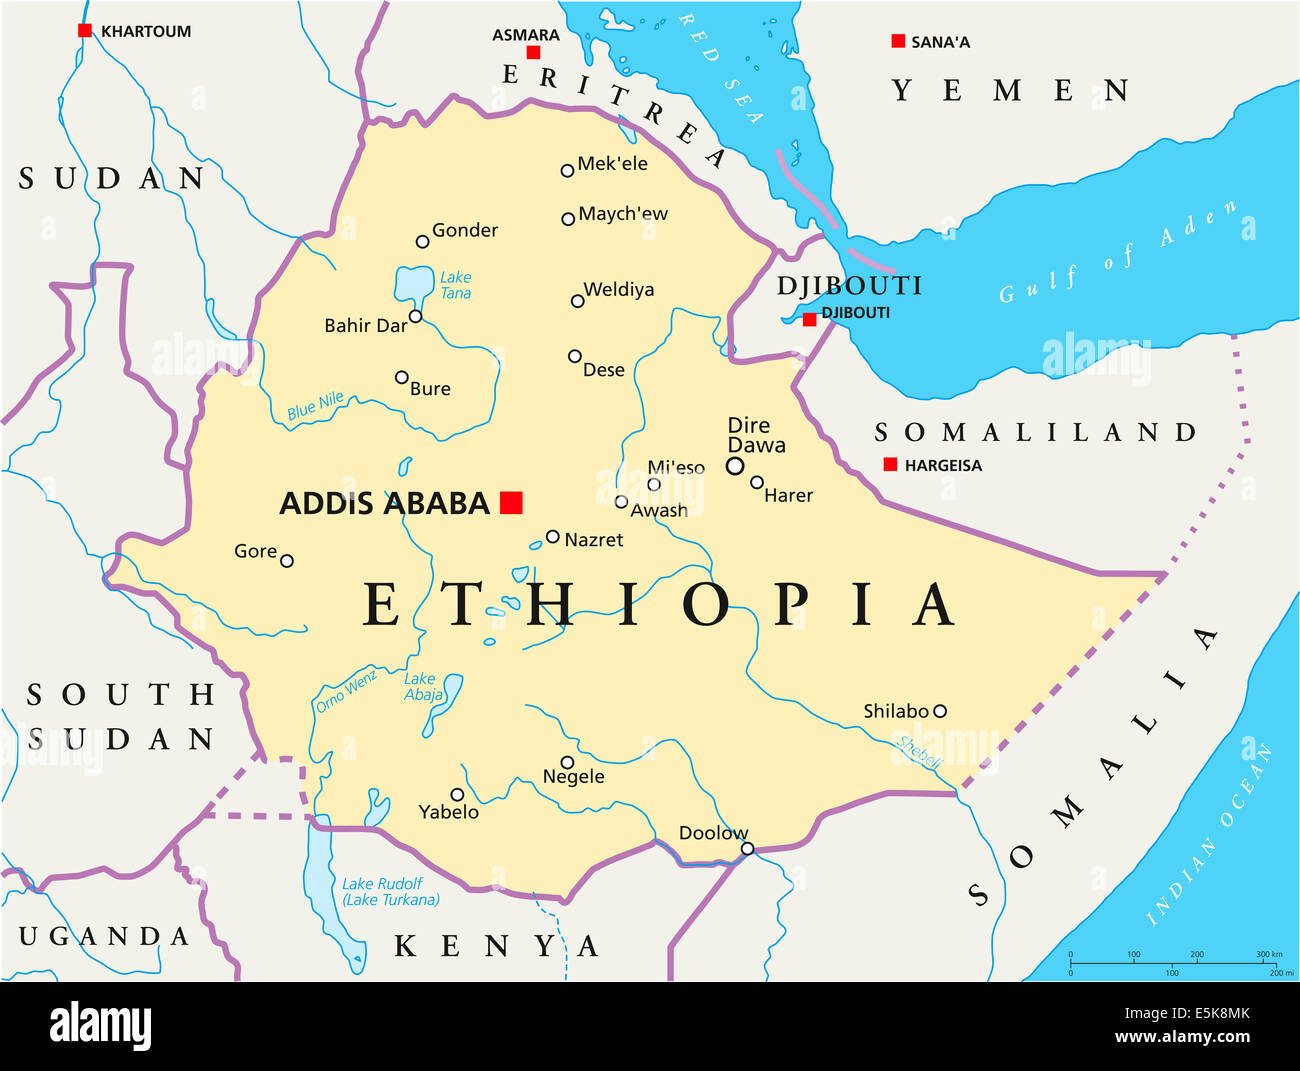 Ethiopia political map with capital addis ababa national borders ethiopia political map with capital addis ababa national borders stock photo 72338691 alamy gumiabroncs Gallery